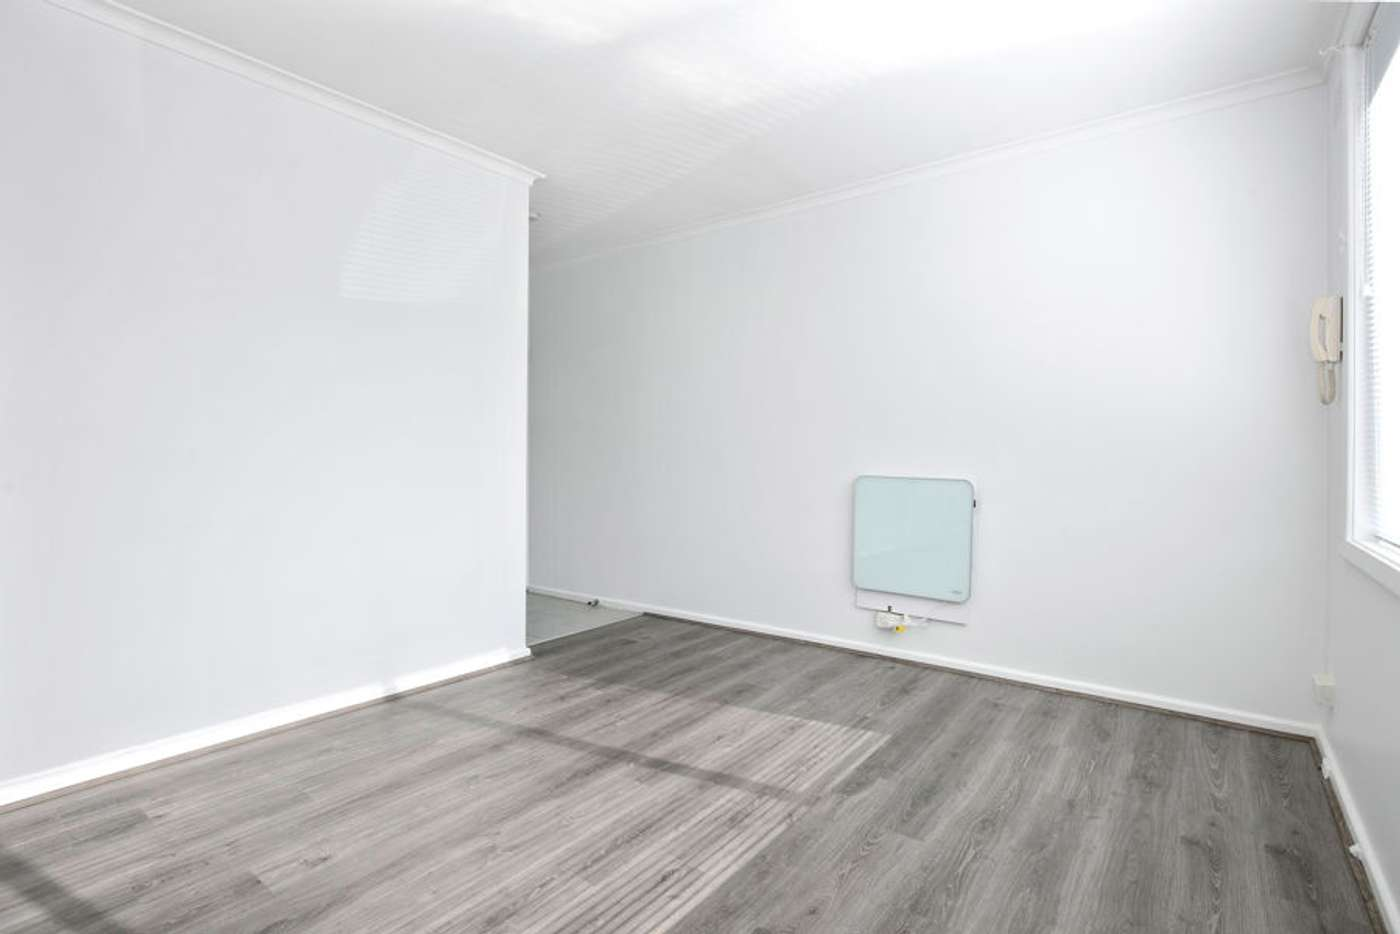 Sixth view of Homely apartment listing, 10/345 Moreland Road, Coburg VIC 3058